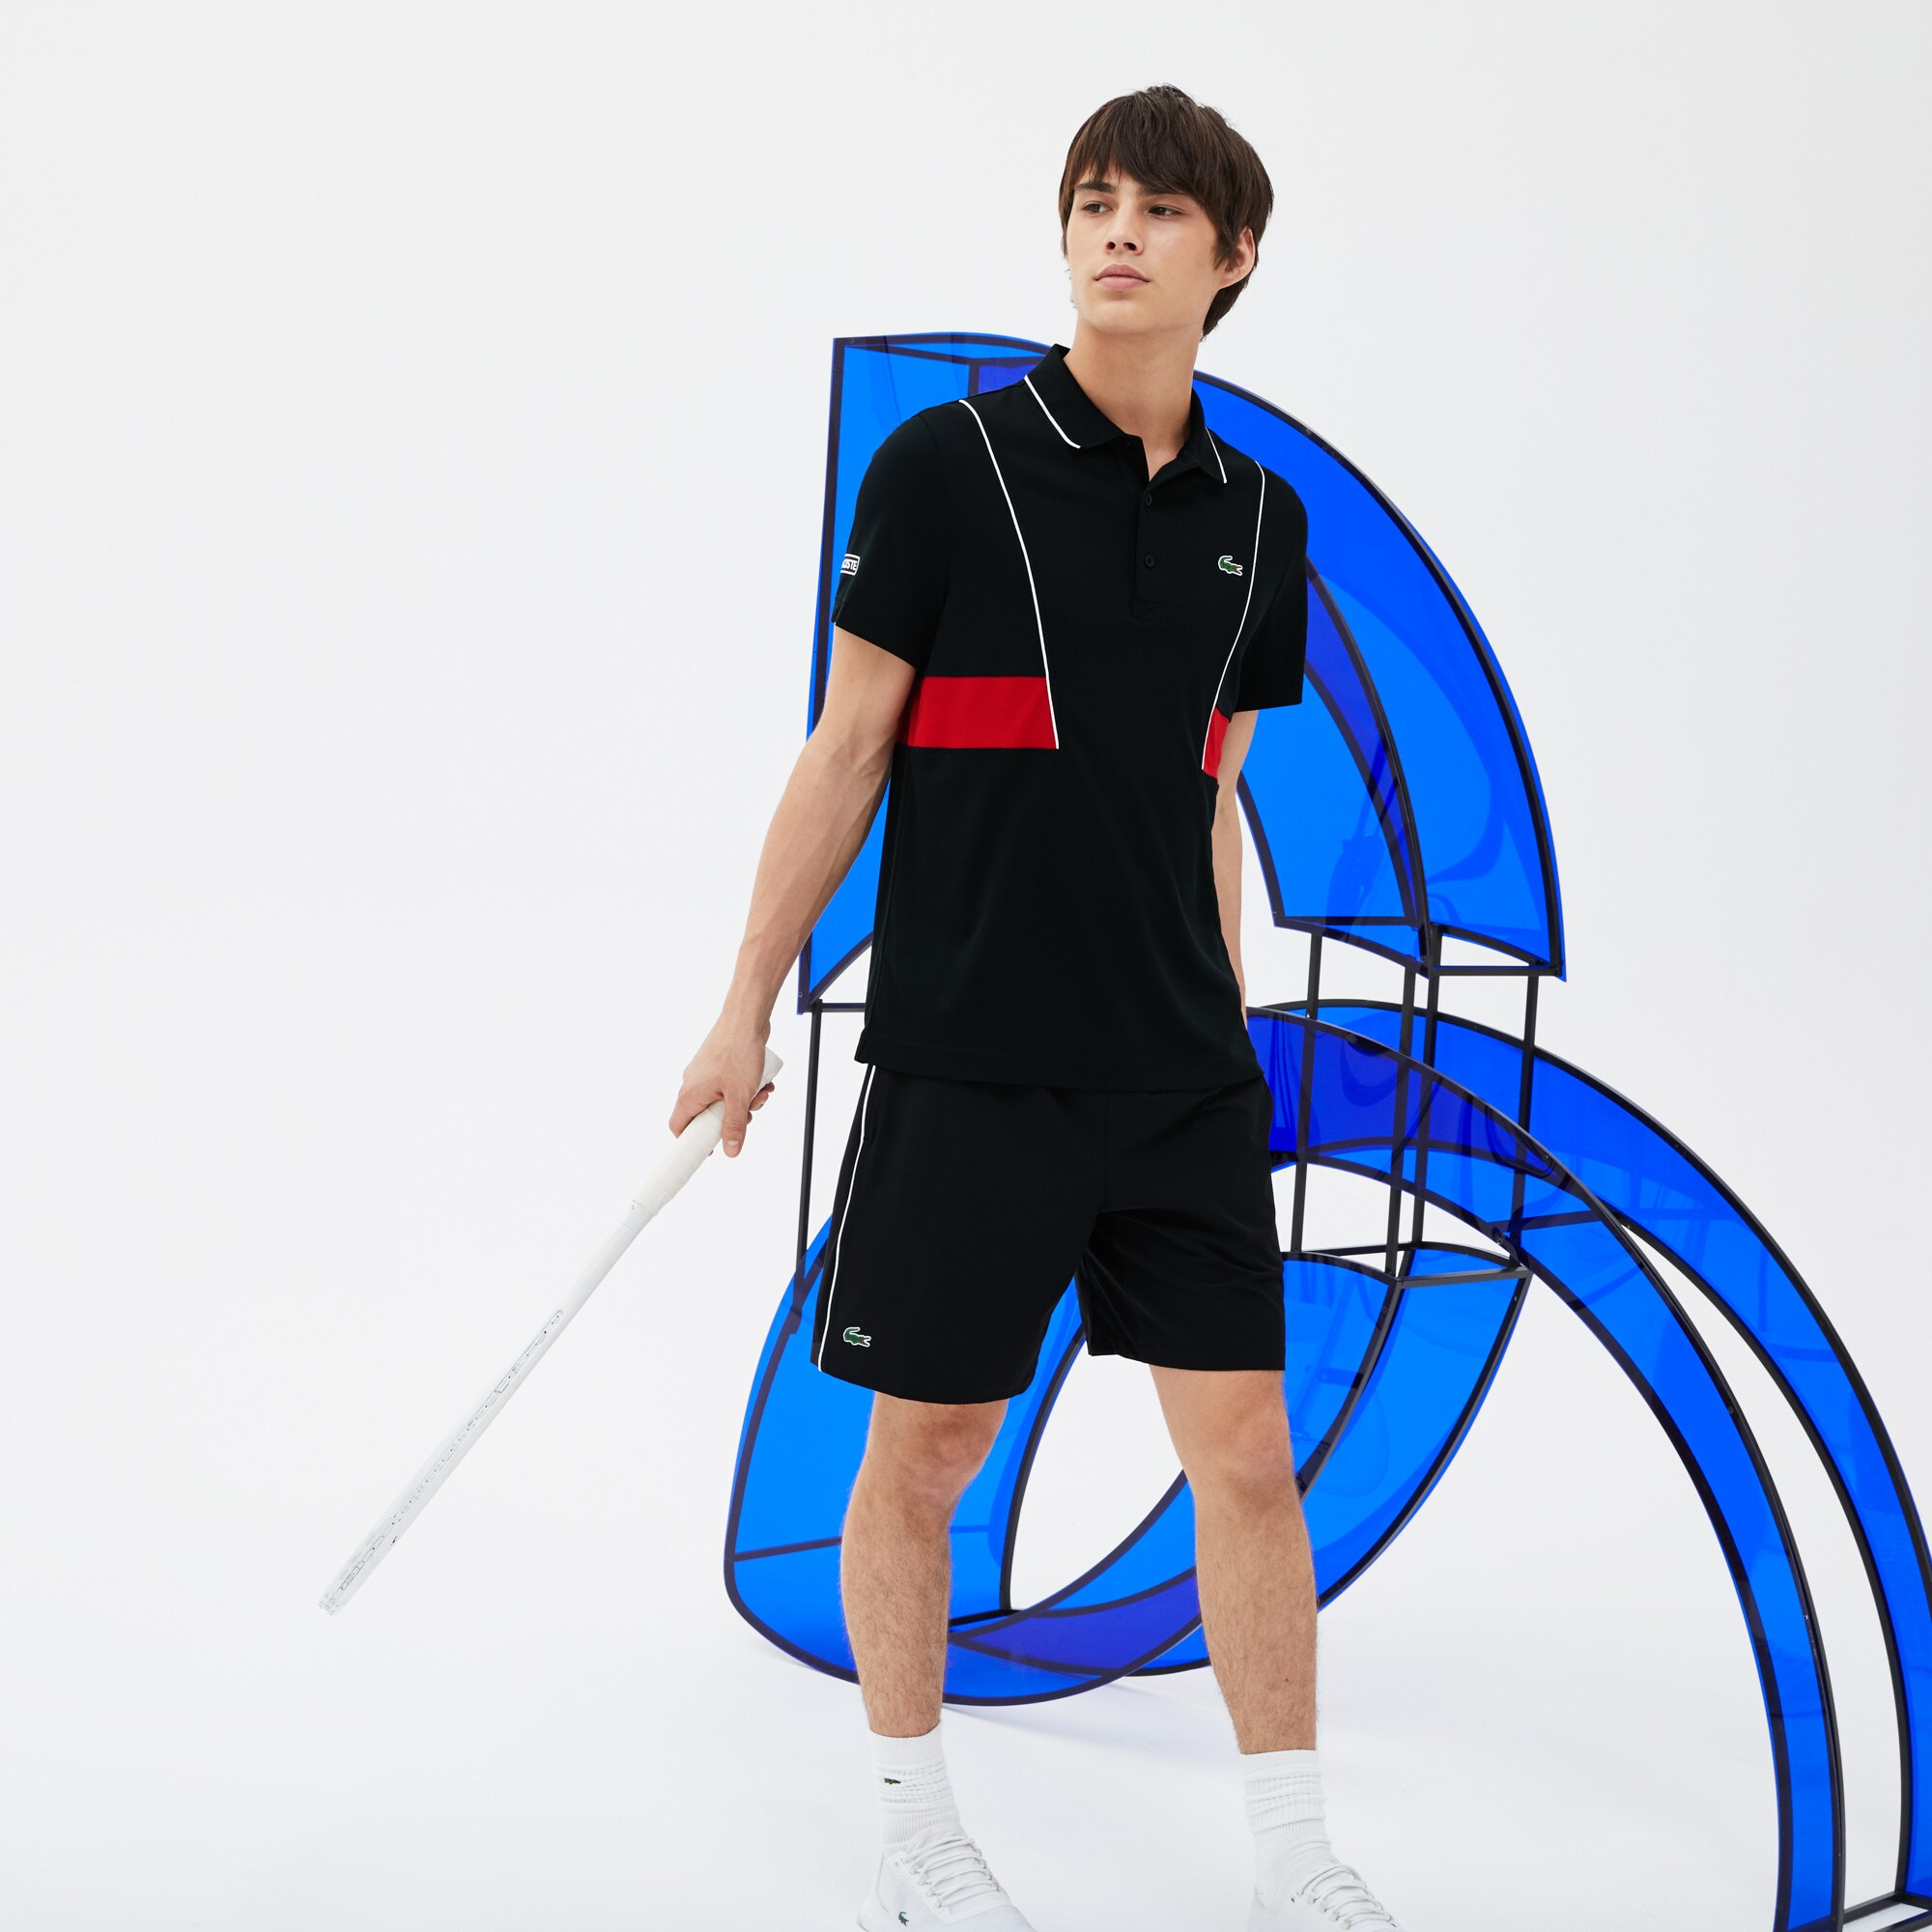 Lacoste Korte Broek Heren.Lacoste Sport Novak Djokovic Support With Style Collection Korte